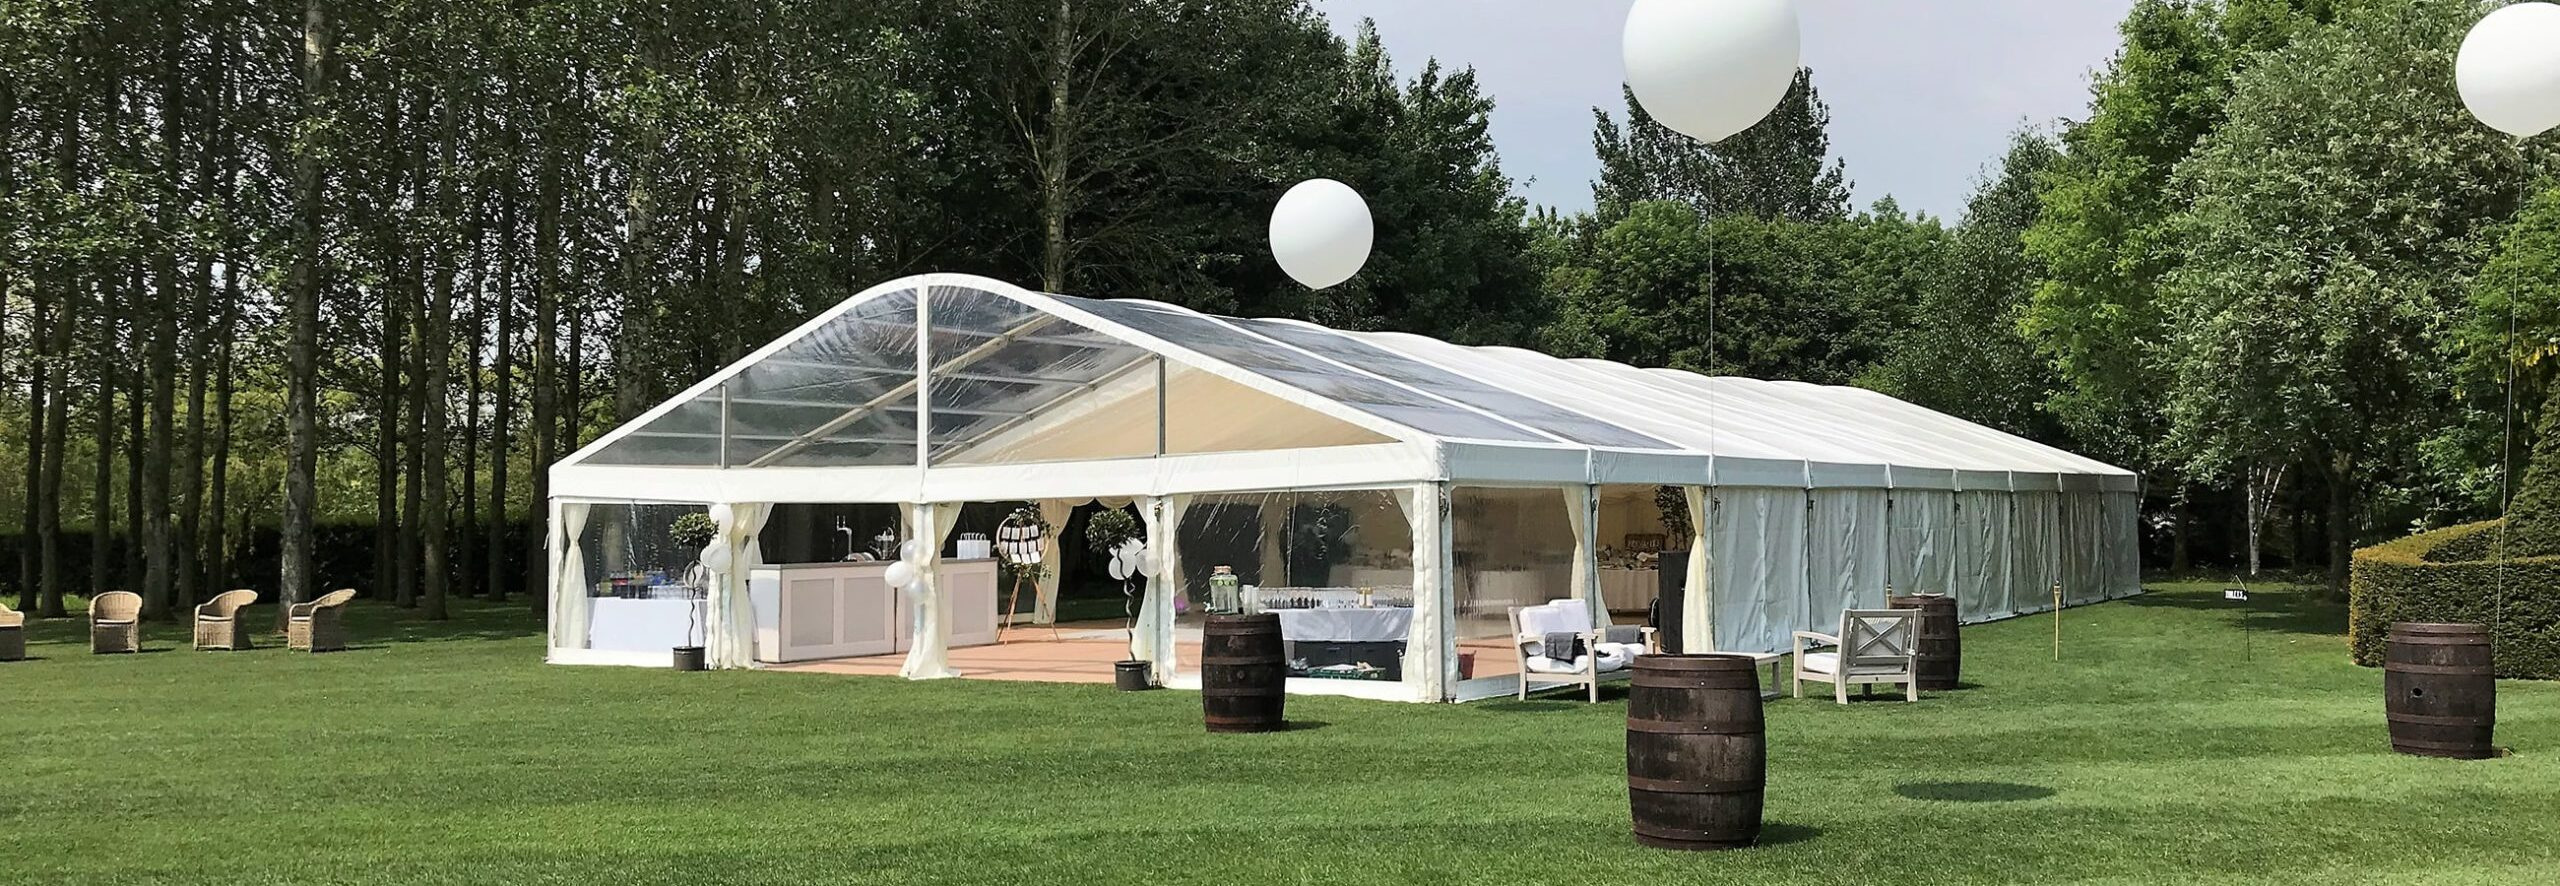 Clearspan Marquee